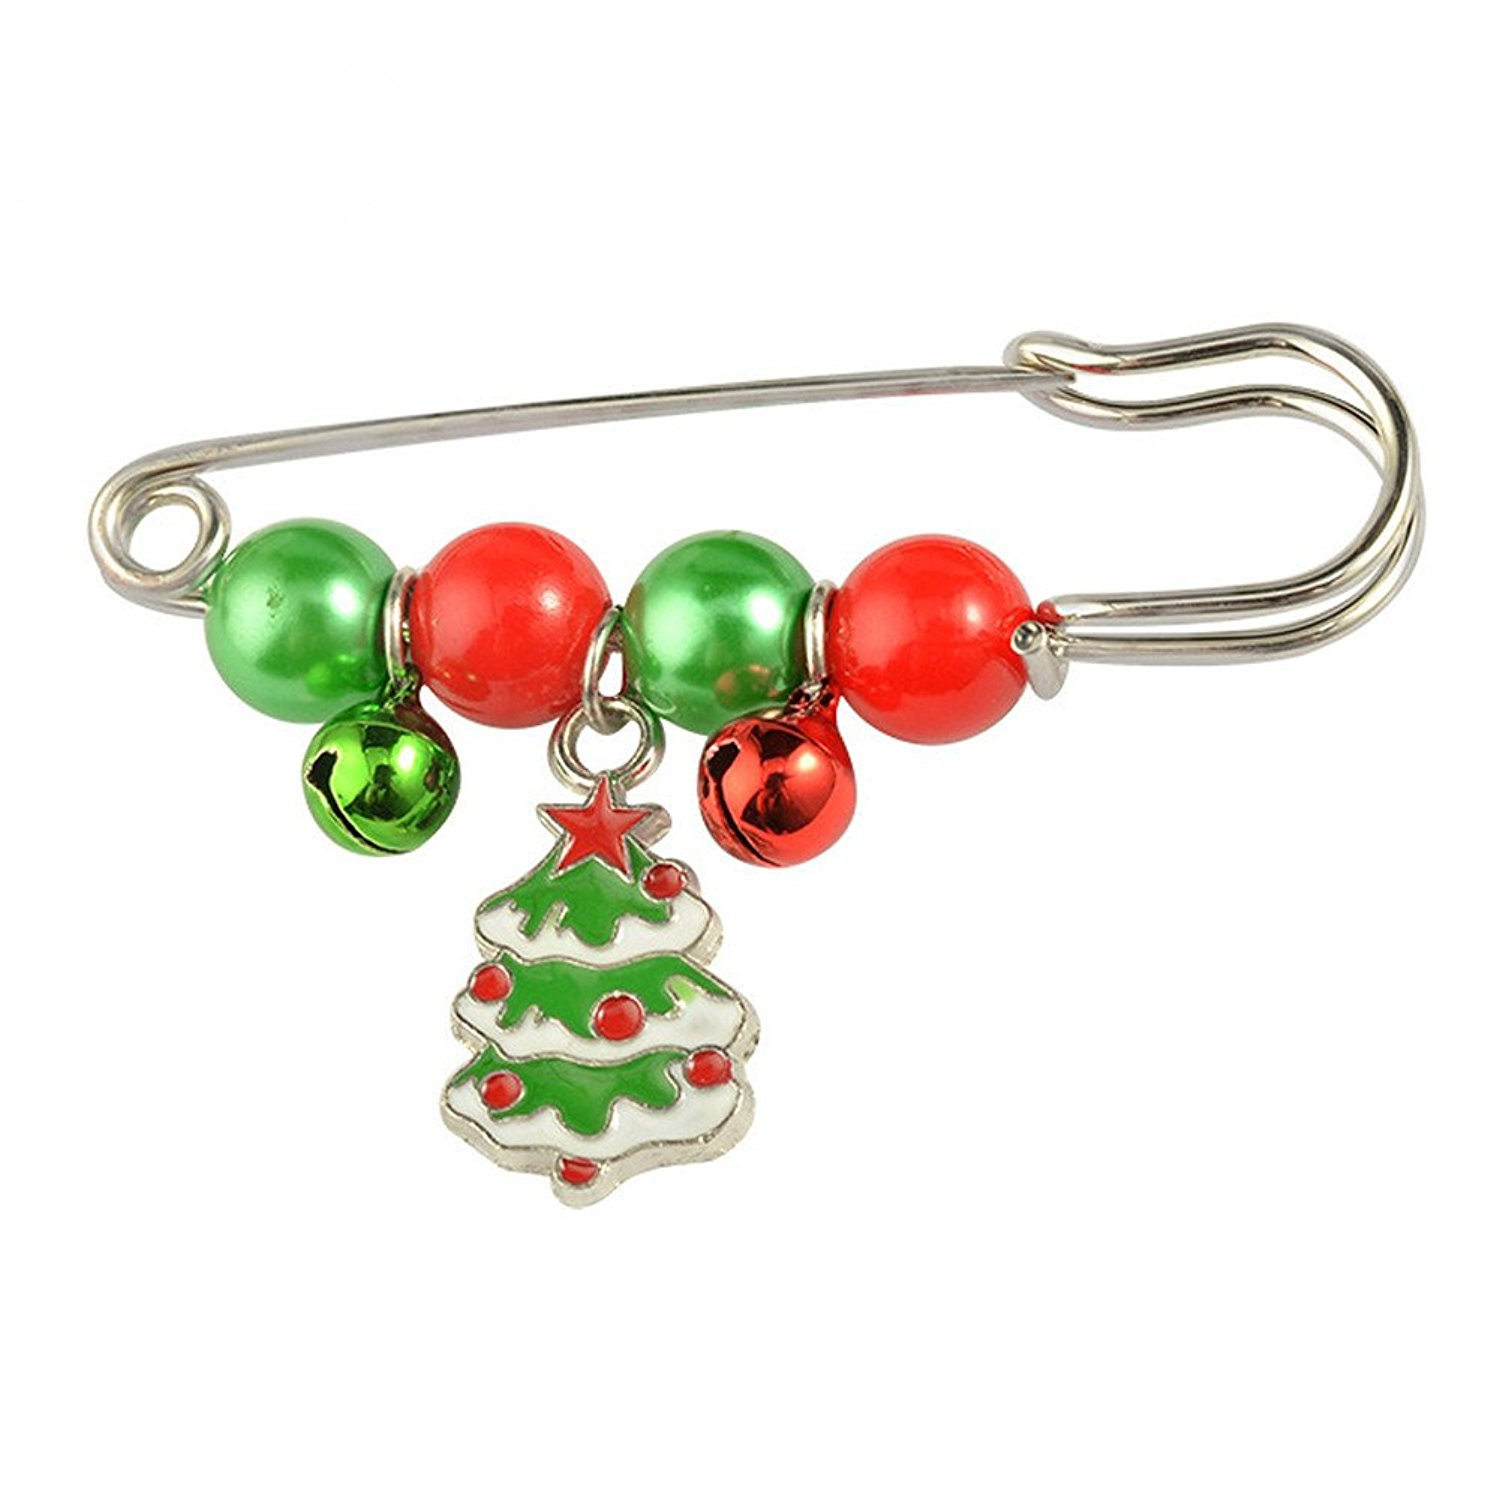 Cheap Christmas Brooch Pin find Christmas Brooch Pin deals on line